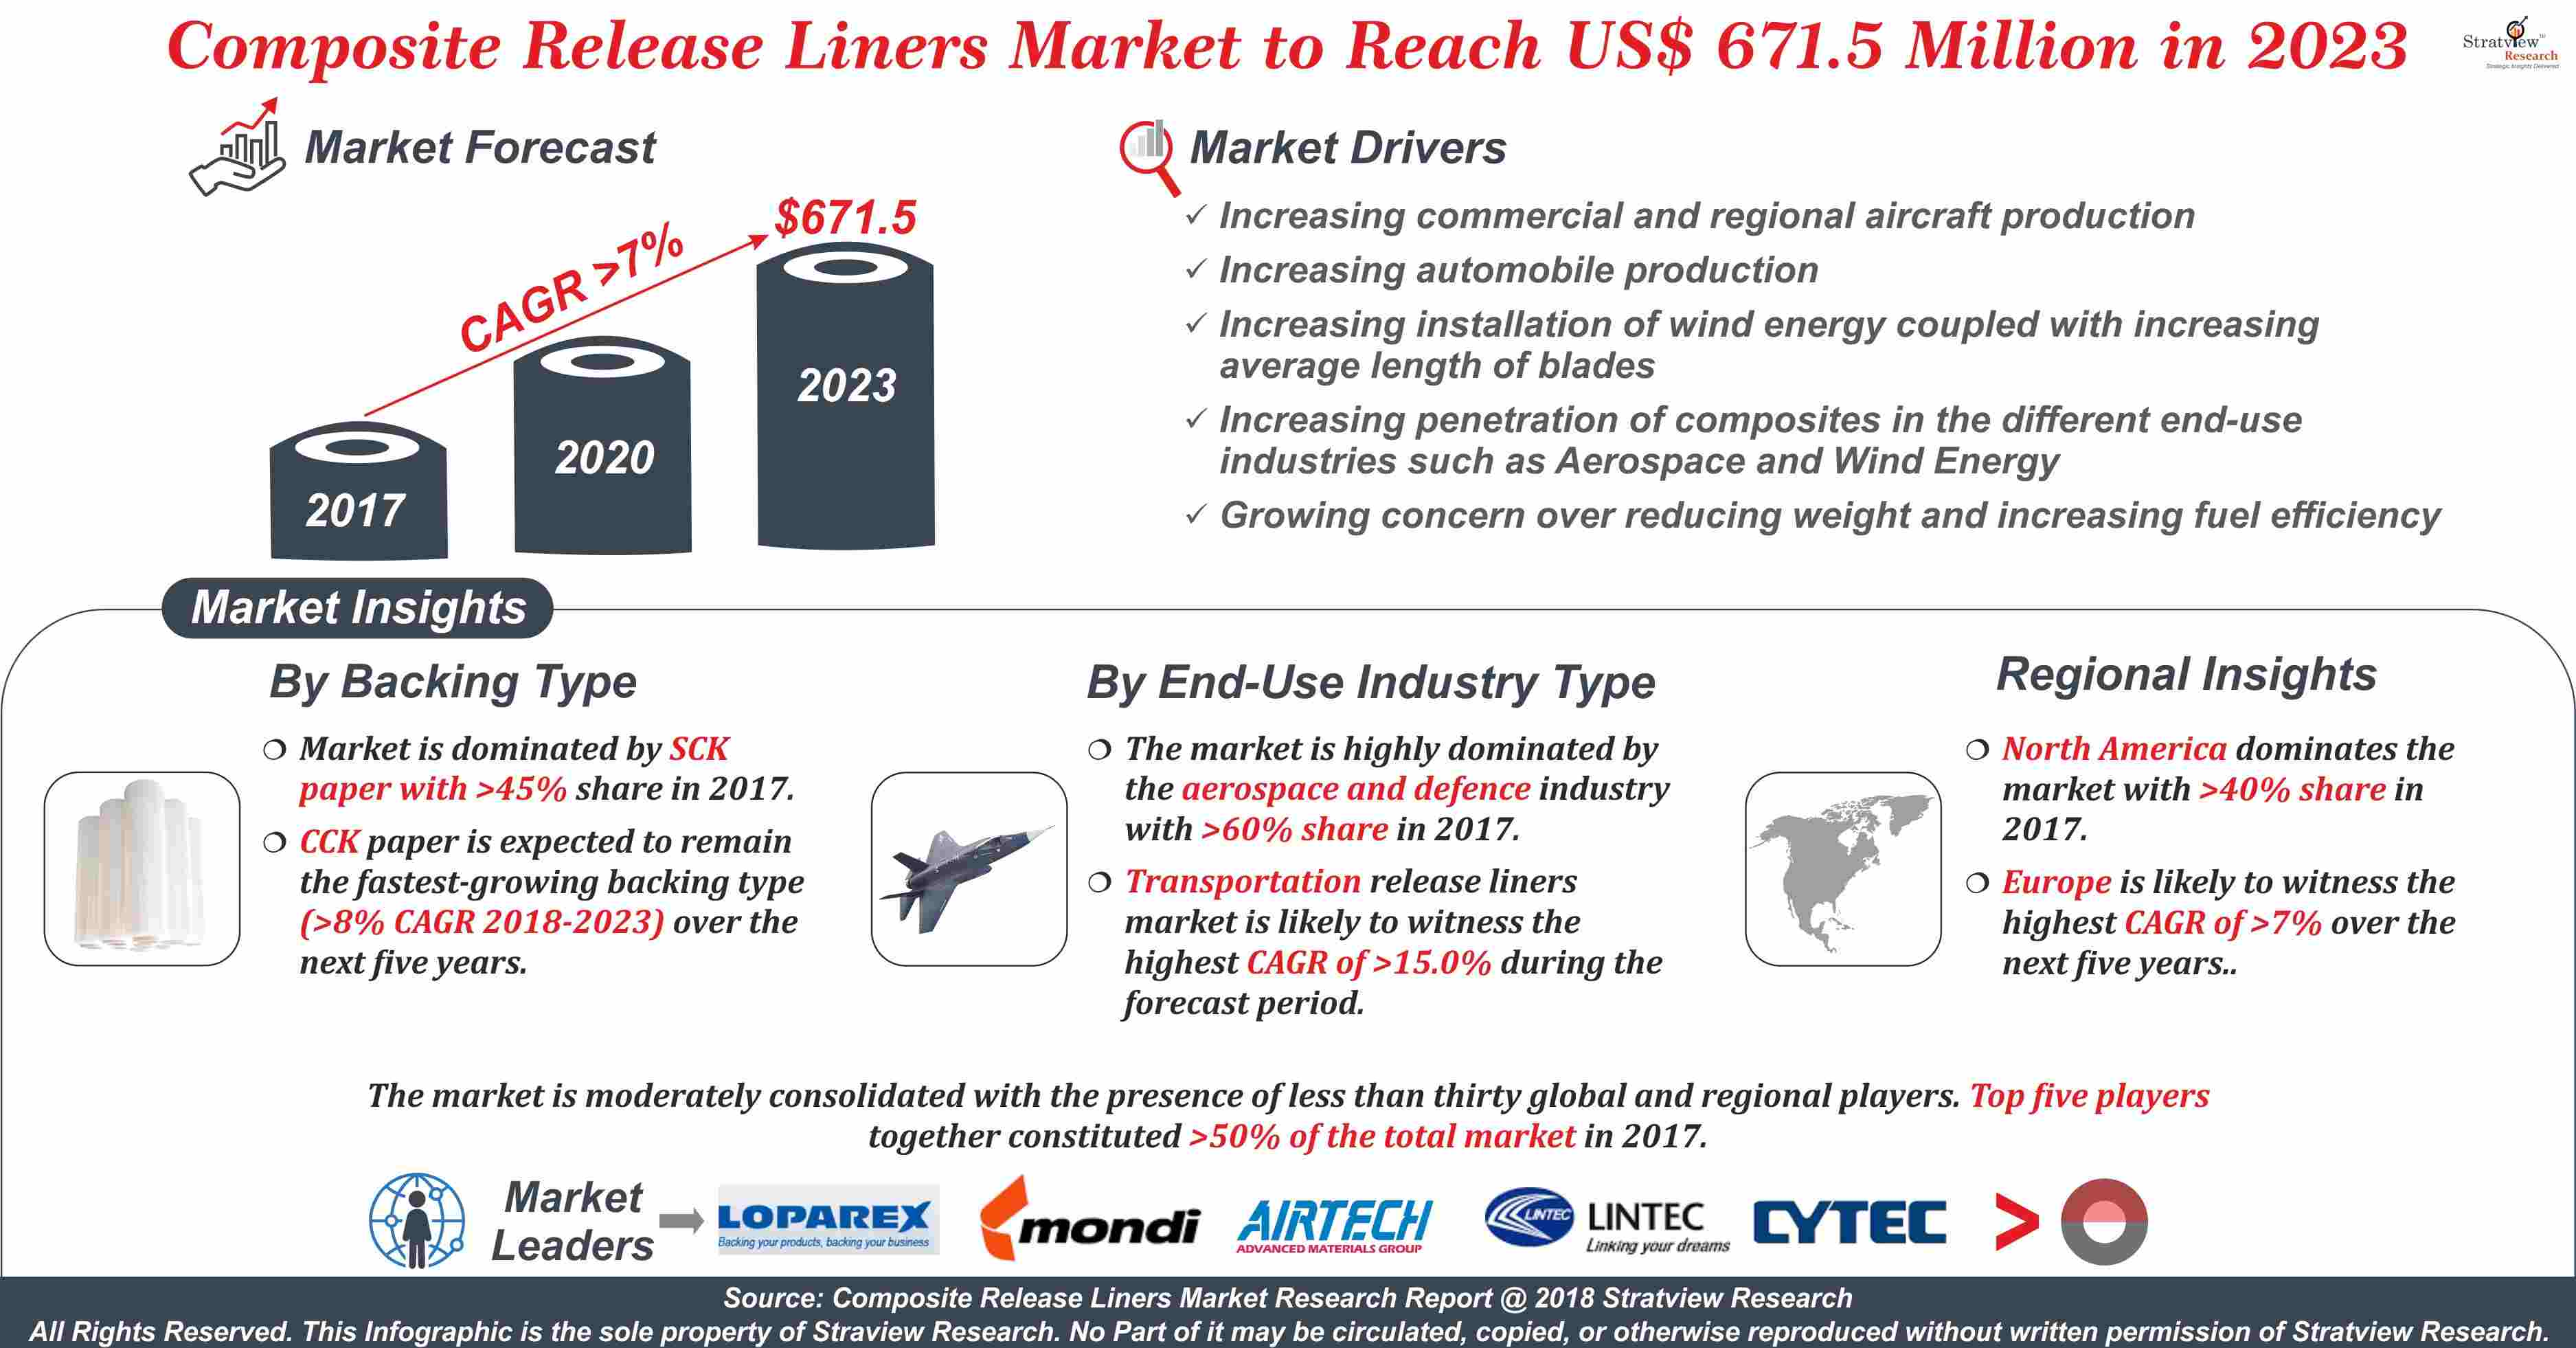 Composite Release Liners Market Analysis